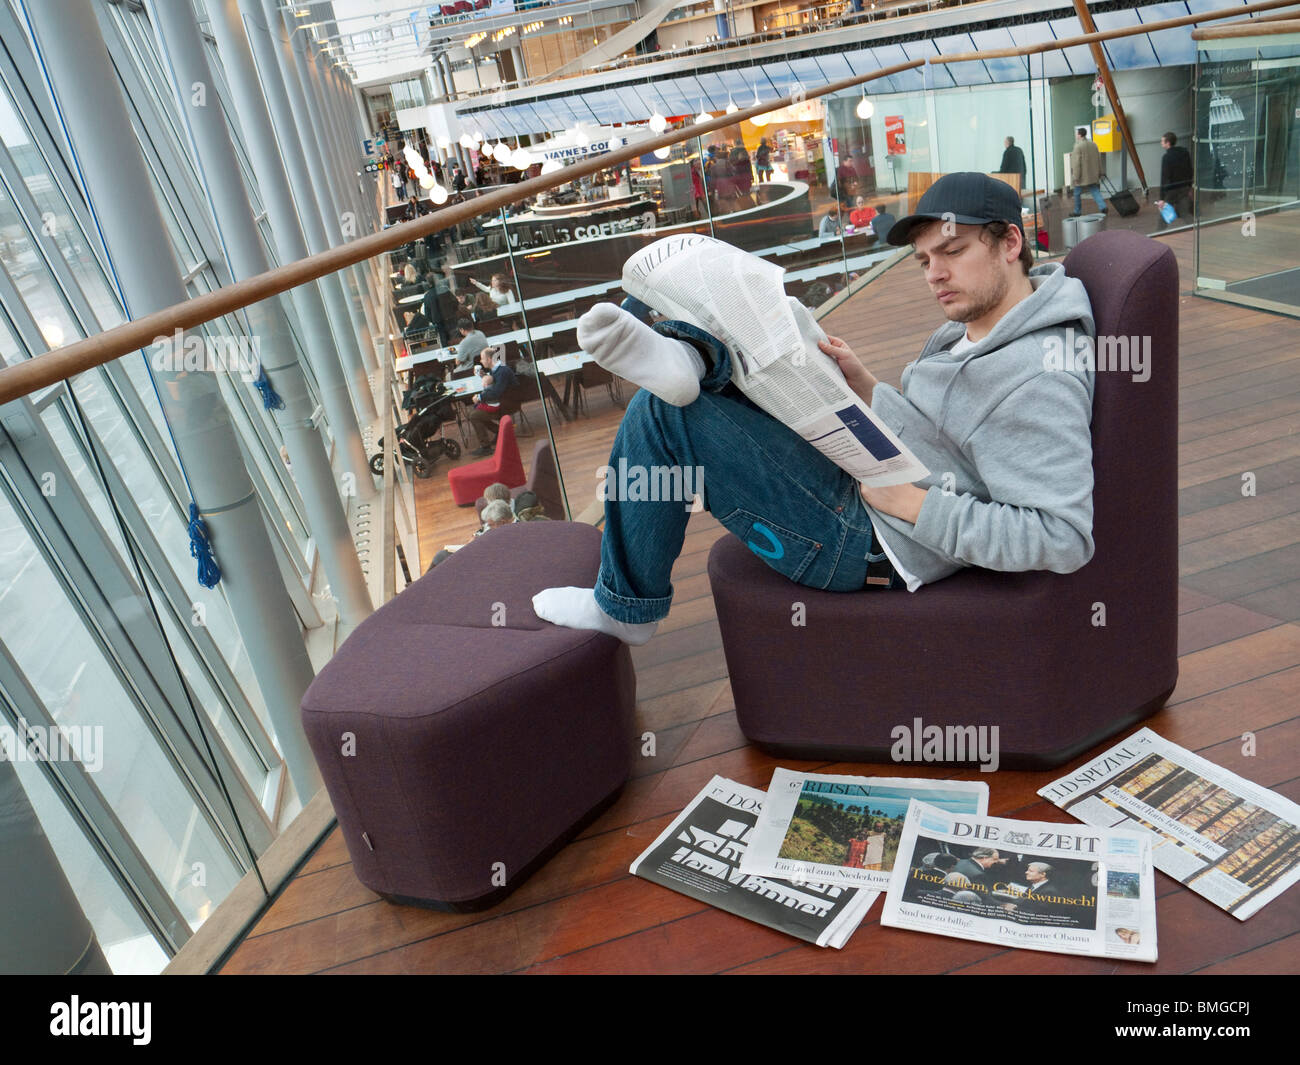 A student reads a newspaper on the Stockholm-Arlanda airport. - Stock Image